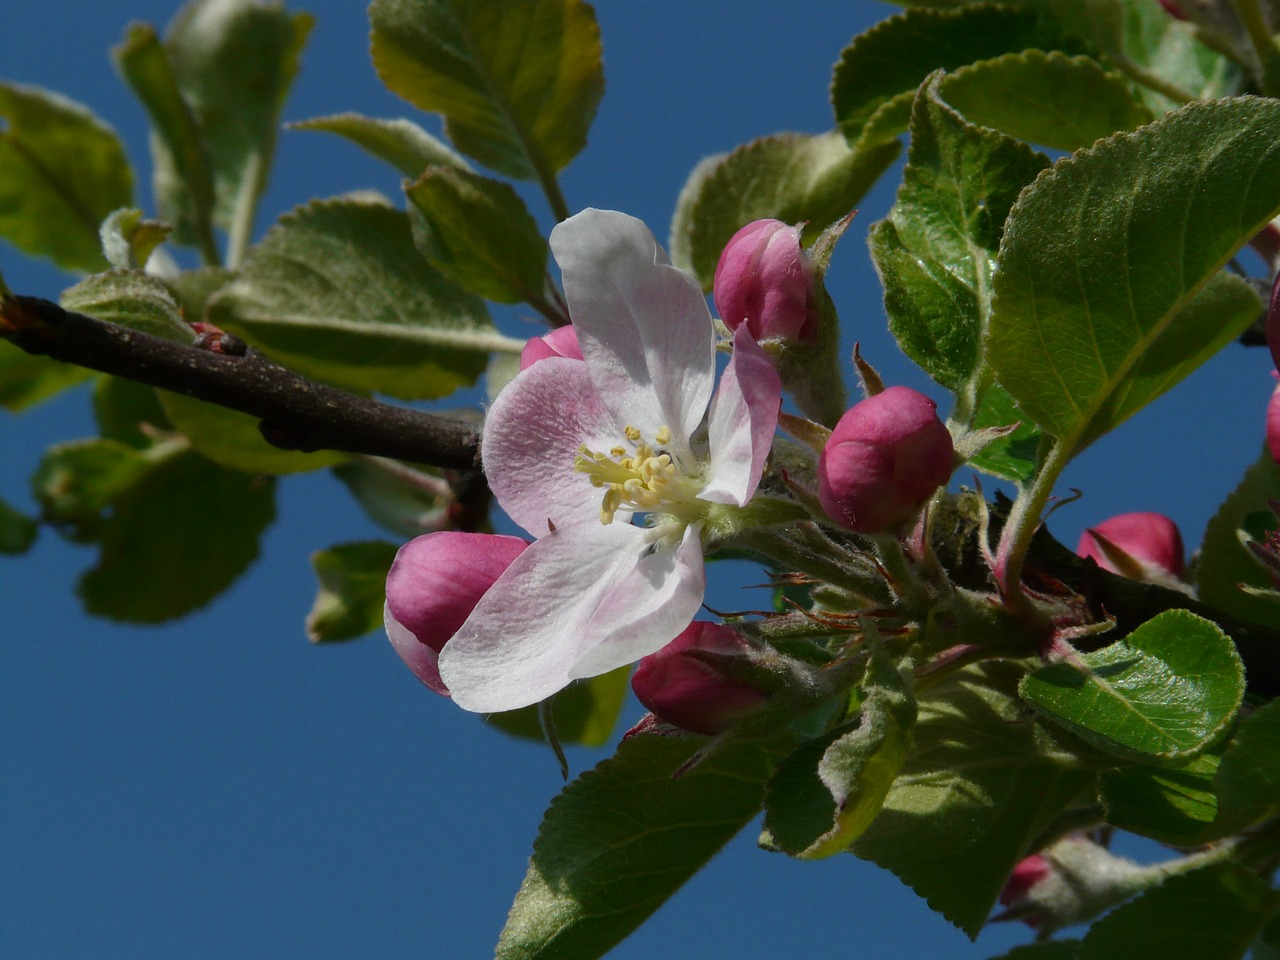 apple blossom,apple tree,blossom,bloom,bloom,pink,tree,branch,spring,beautiful,free pictures, free photos, free images, royalty free, free illustrations, public domain